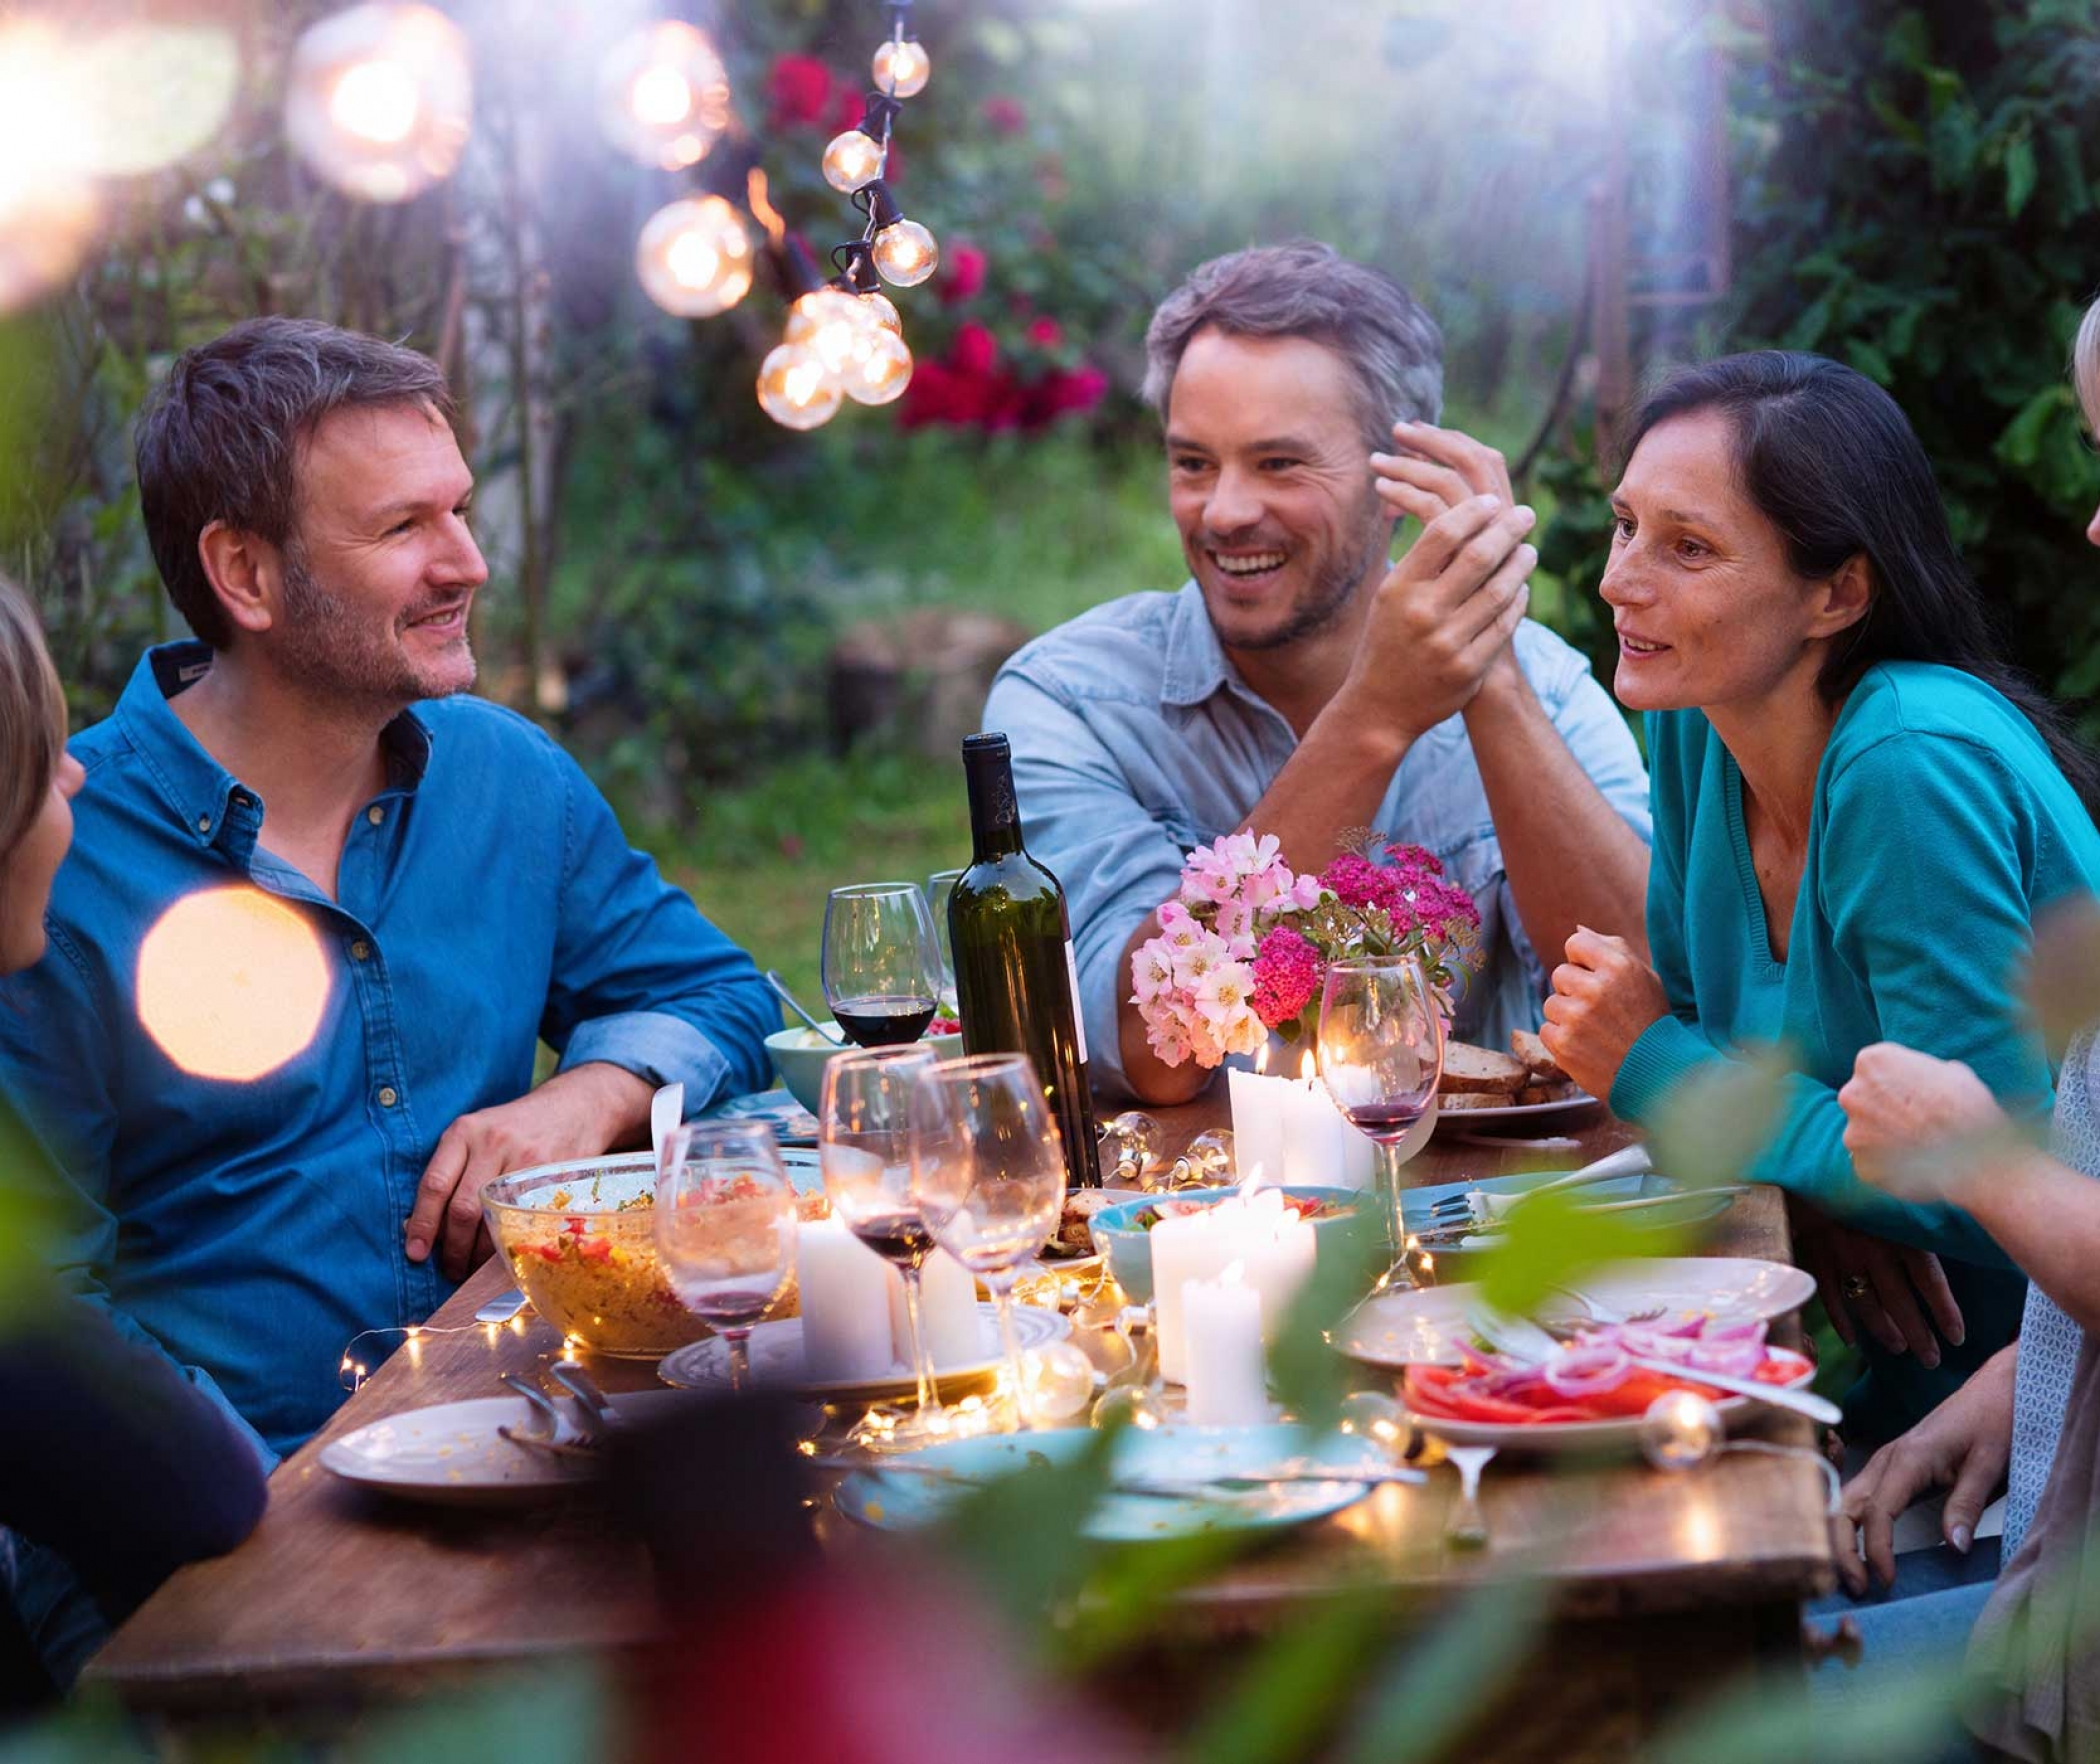 Planning an outdoor party with friends and family